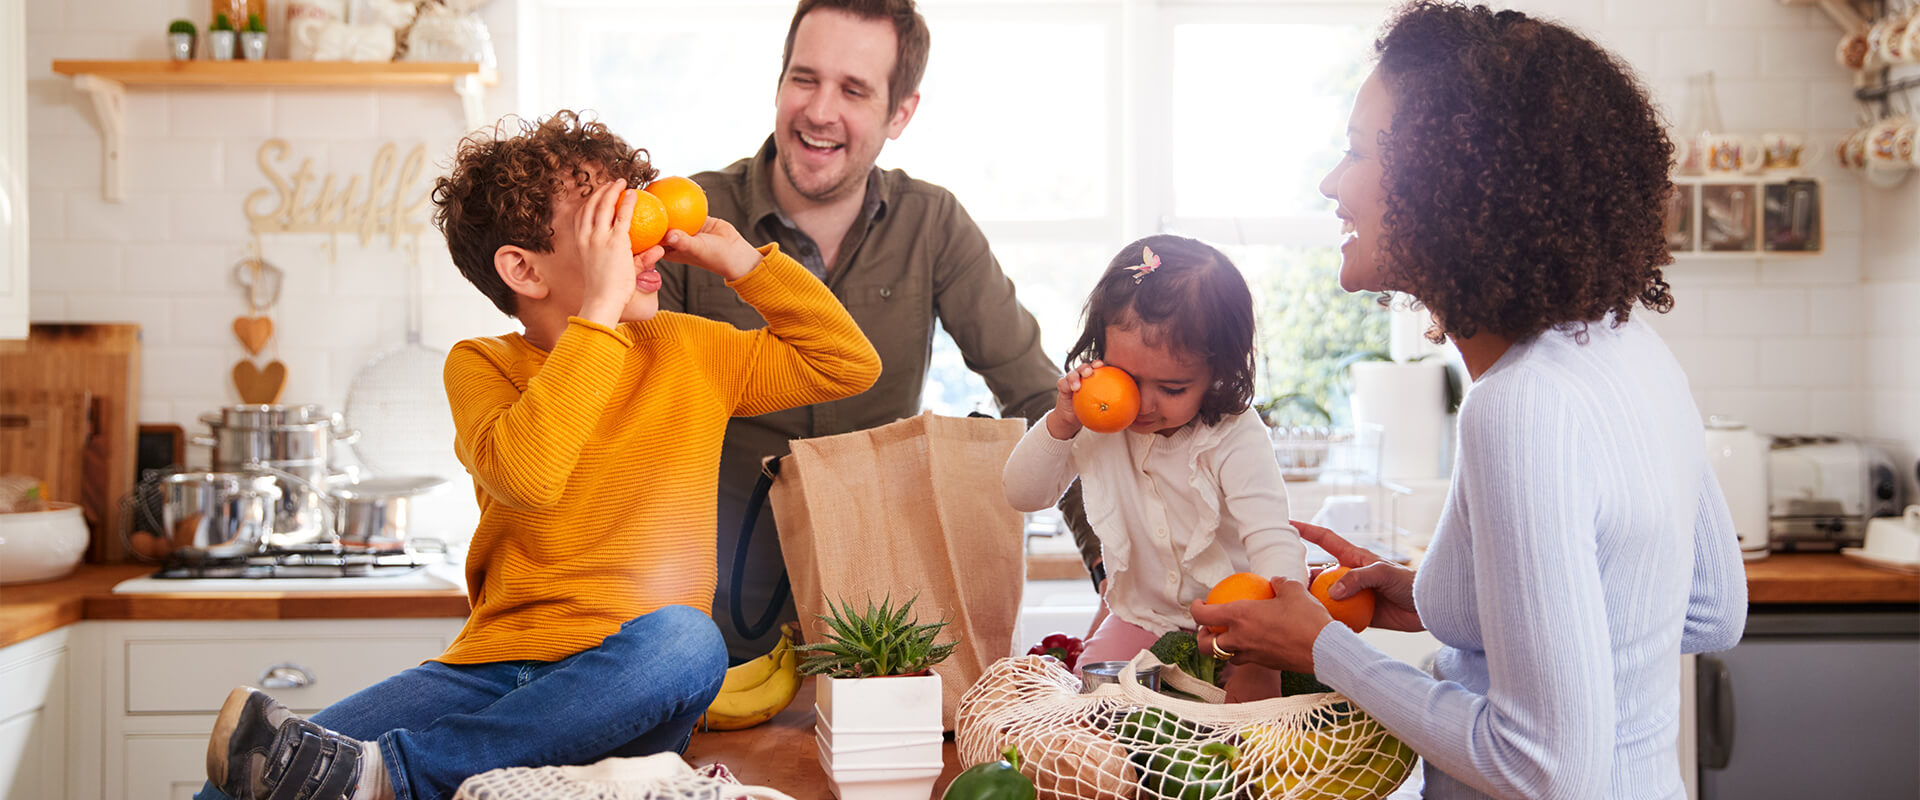 family laughing with groceries in the kitchen